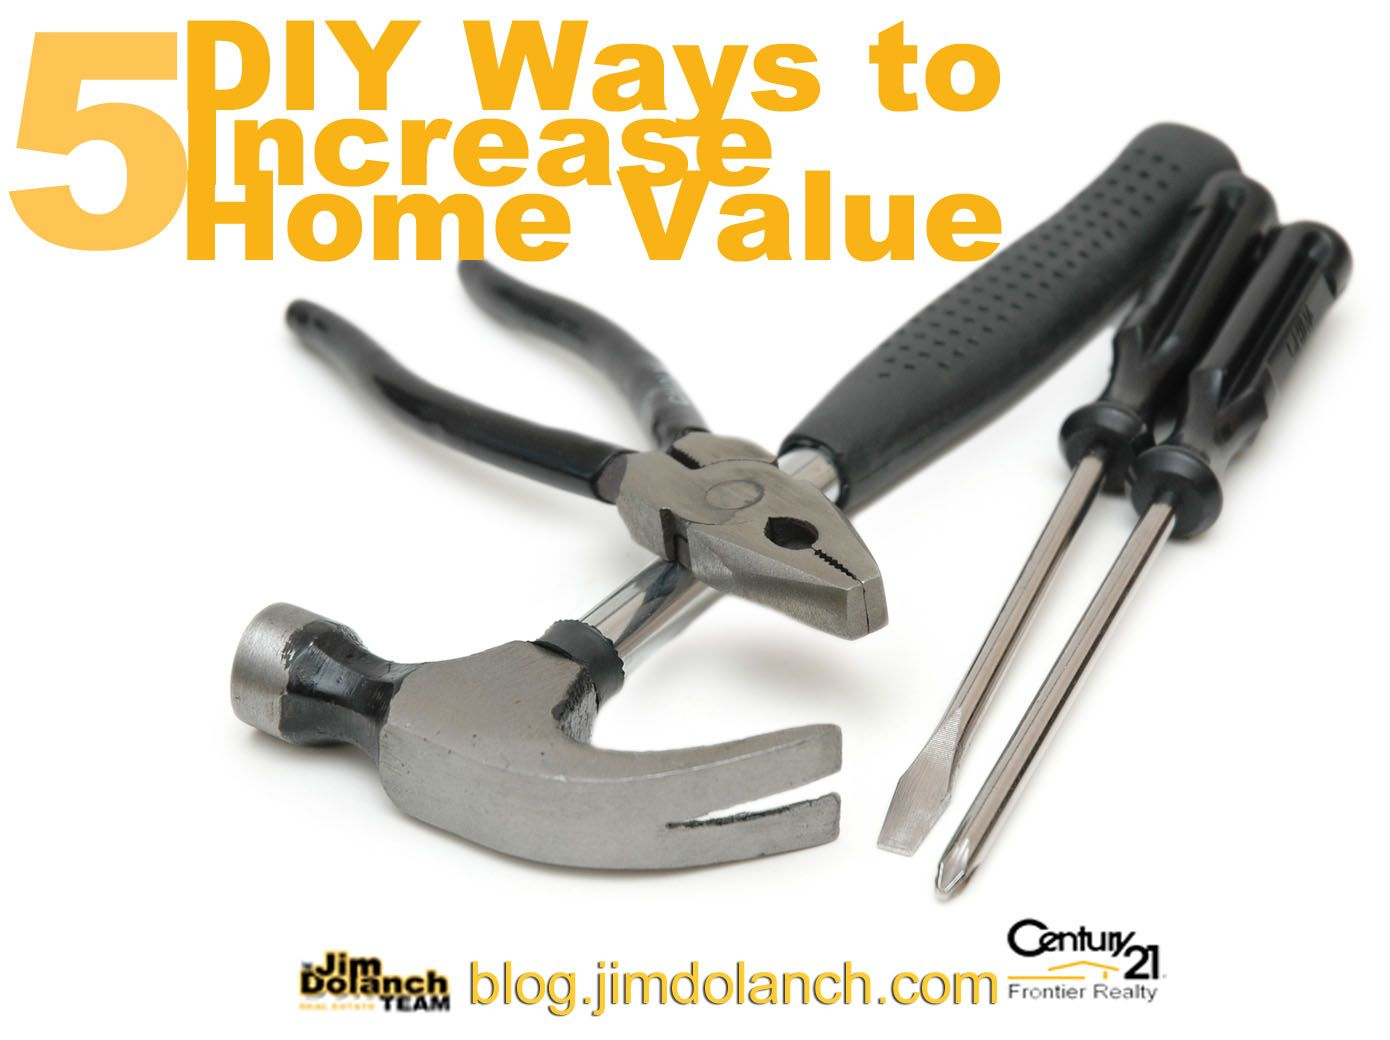 5 projects that increase home value.